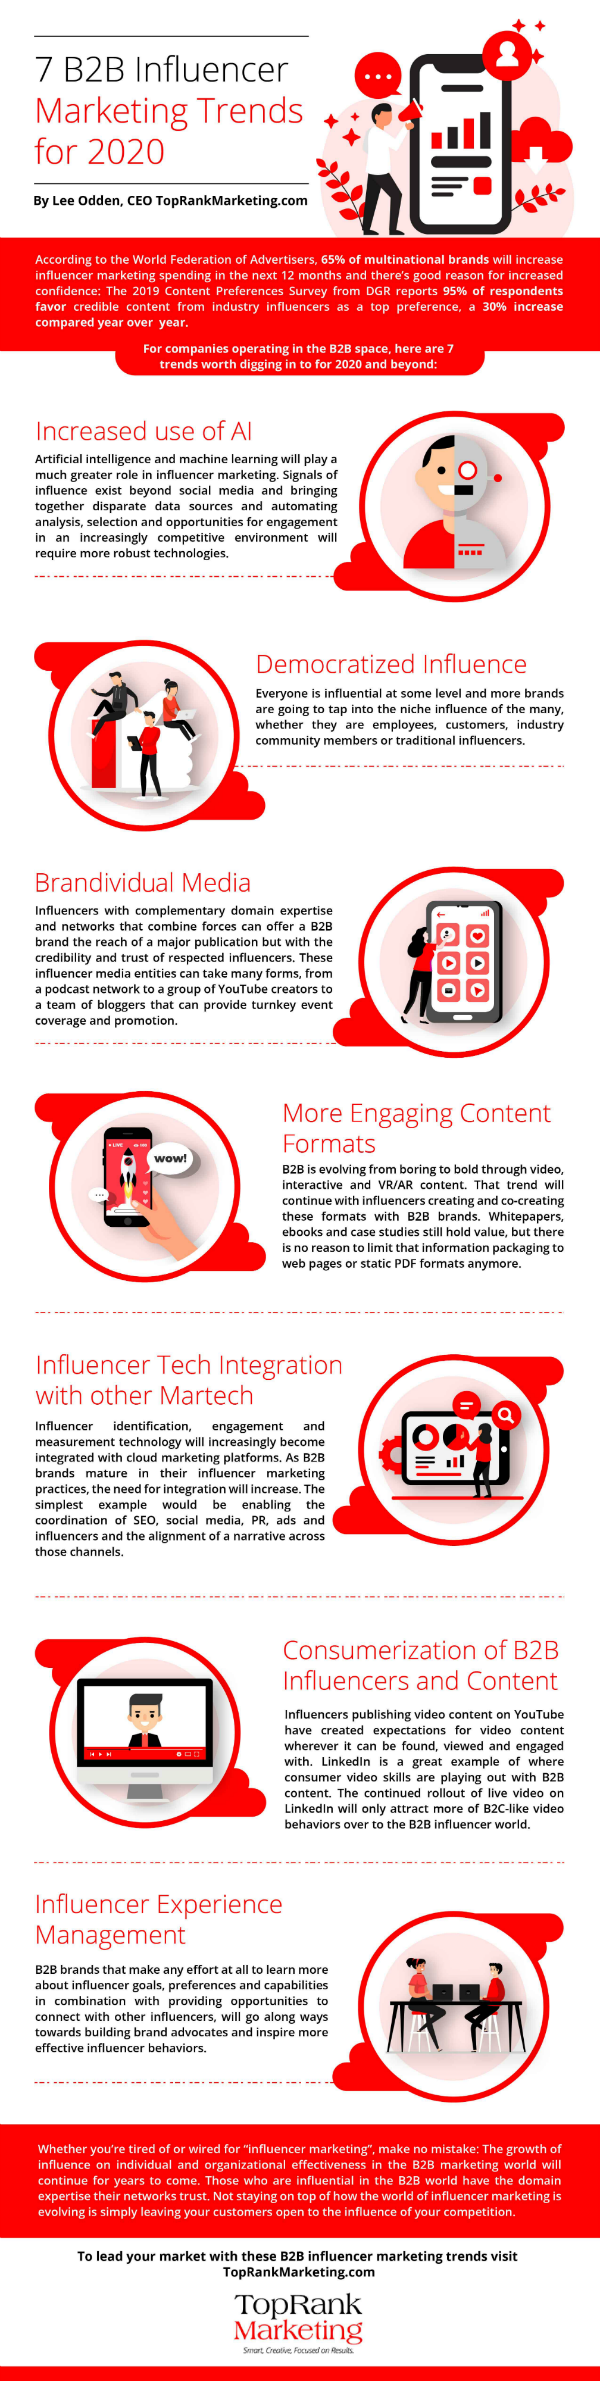 The Top B2B Influencer Marketing Trends for 2020 [Infographic]                      | Social Media Today